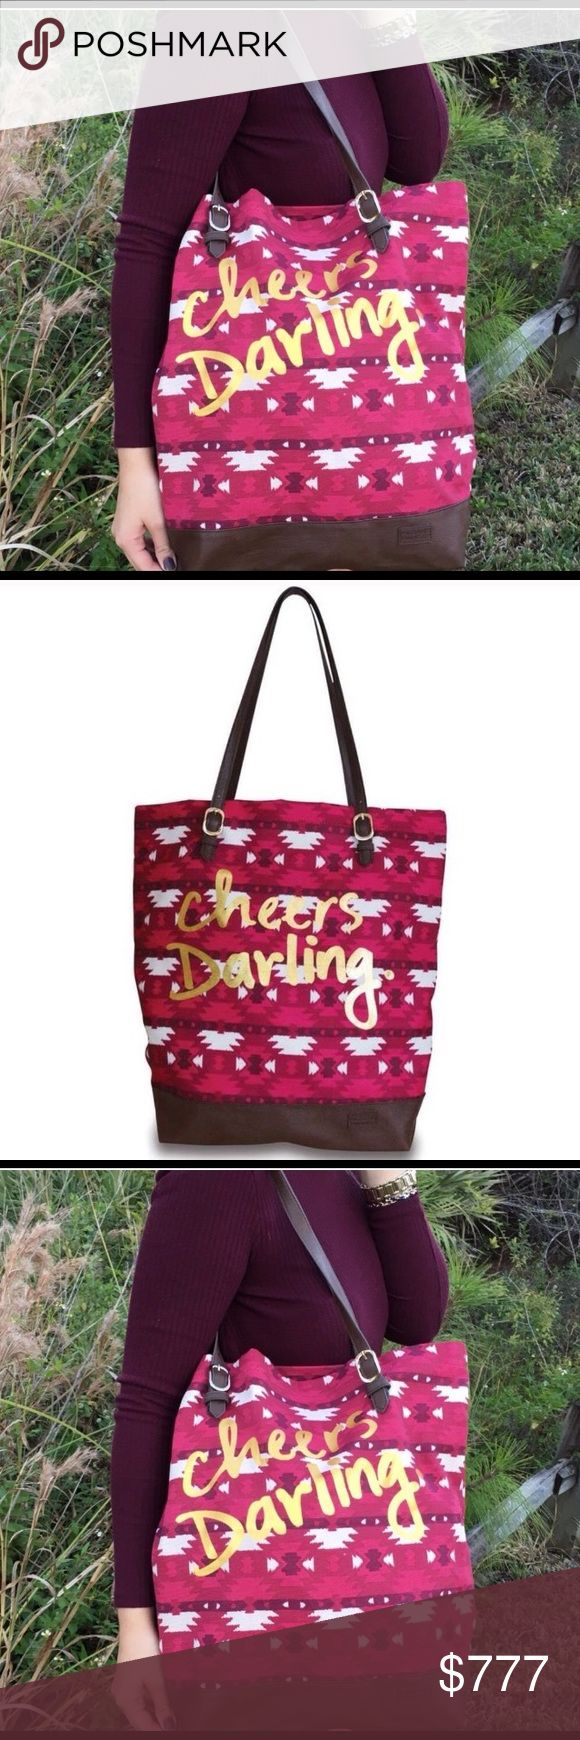 "JUST IN🌲🌲🌲 Canvas Cheer So Darling for Christmas, an absolute favorite in canvas! 💯 Cotton exterior with plenty of room for shopping, work, or any occasion! Feature embossed metal hardware and on trend Aztec Print. Vegan leather trim! Cheers to that!!! 17""x 4.75 x 16"" Adjustable Shoulder strap Vegan leather Aztec on-trend Print  LIMITED INTRO PRICING!! ! Order now for Christmas 🎄 Boutique Bags Shoulder Bags"